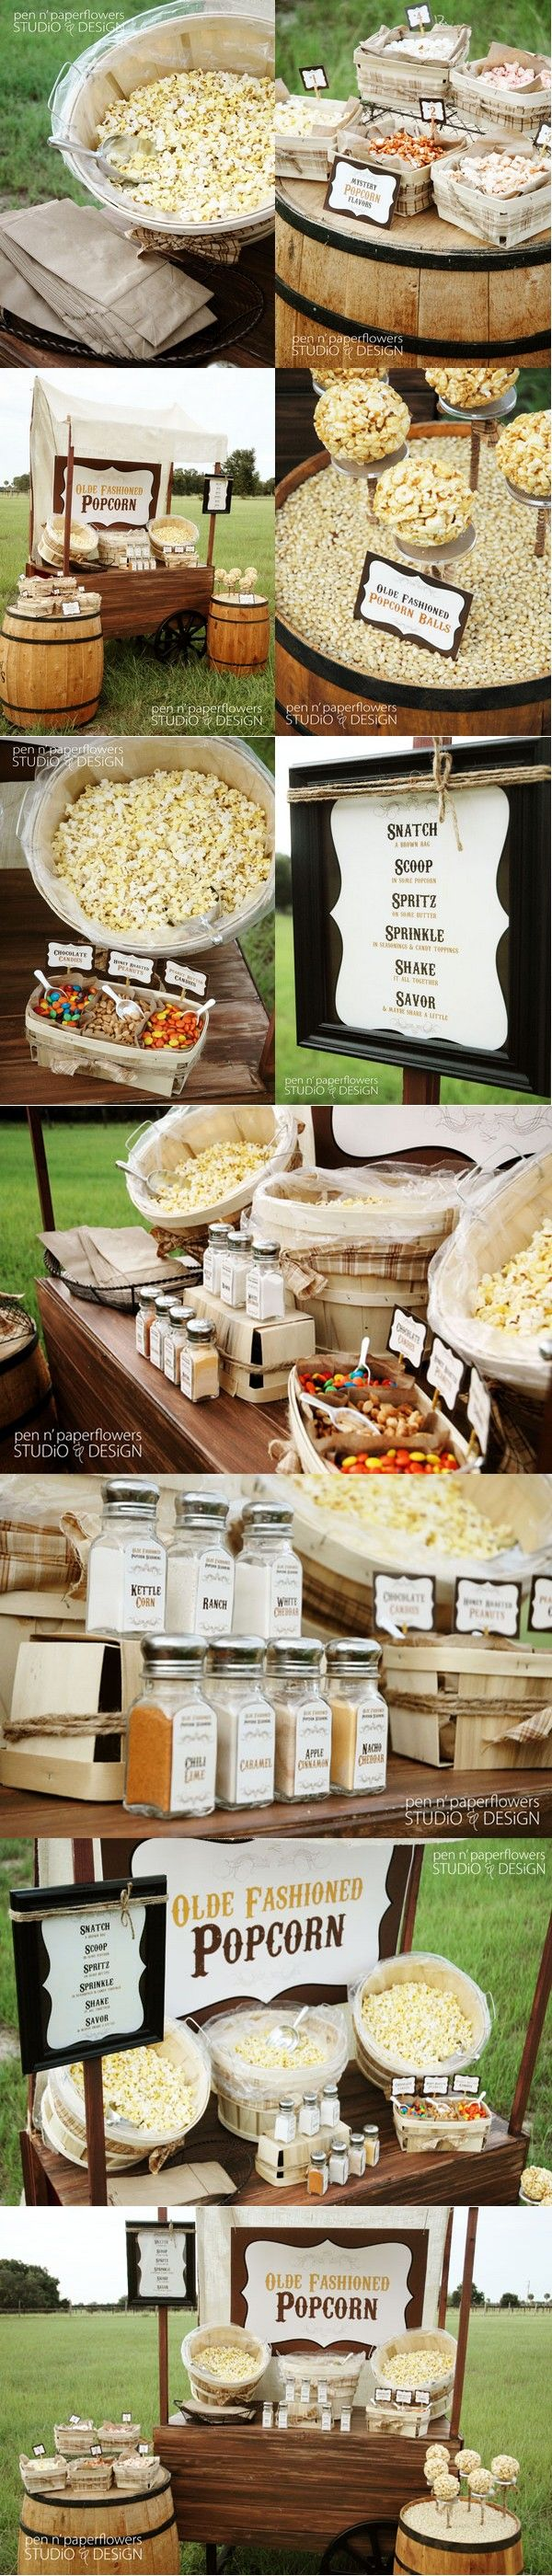 Popcorn bar decor ideas